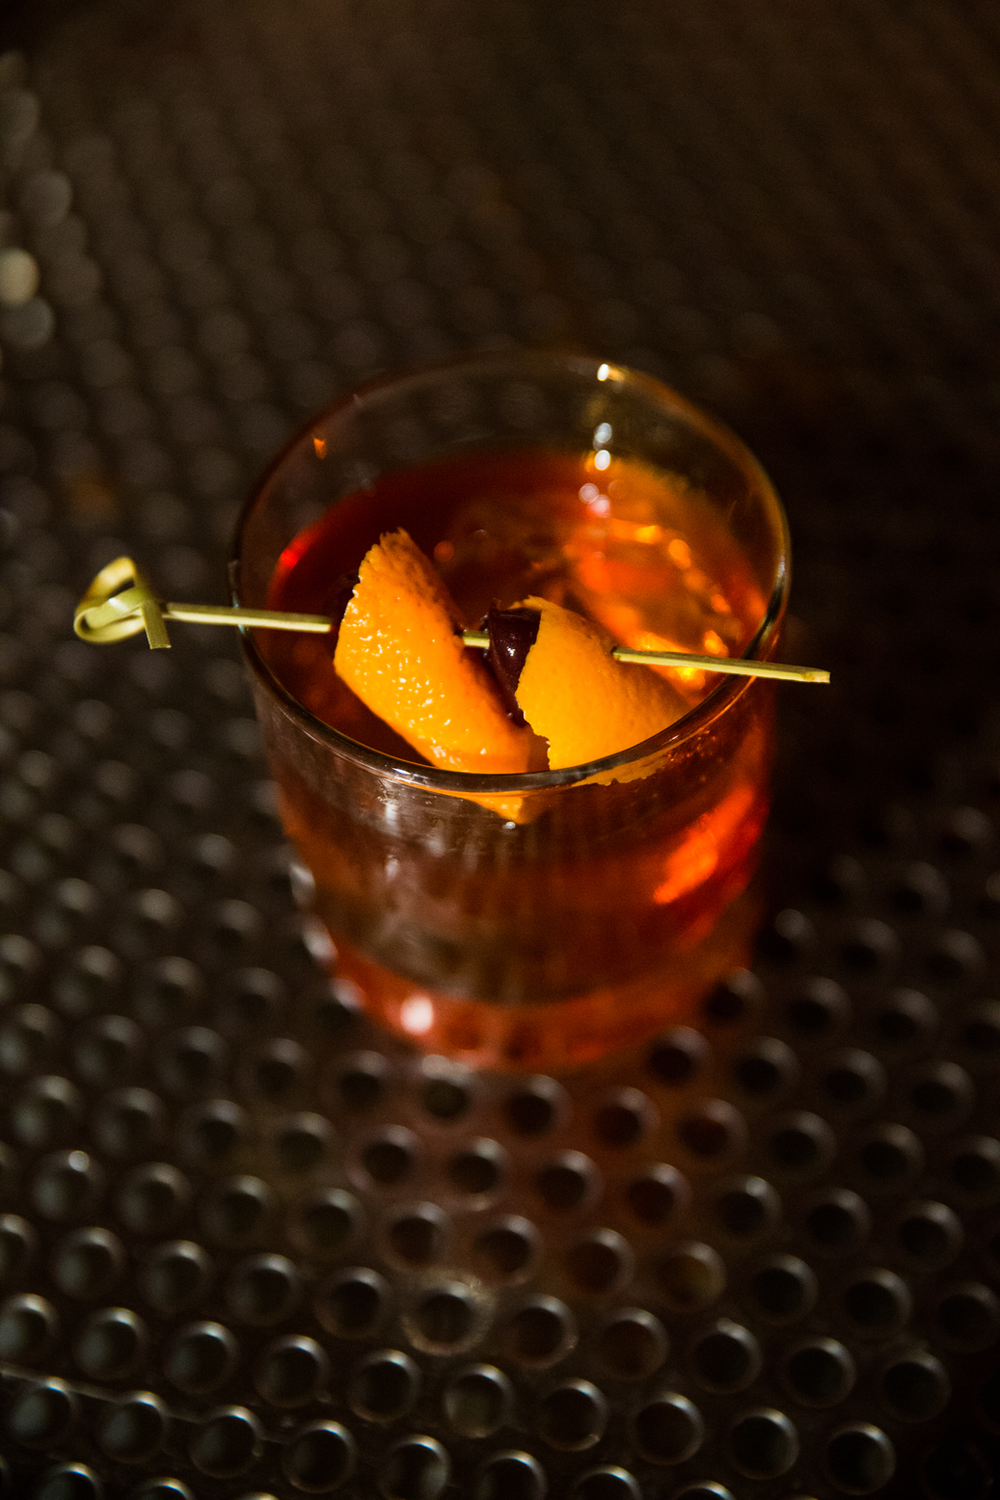 Voila! An Old Fashioned.